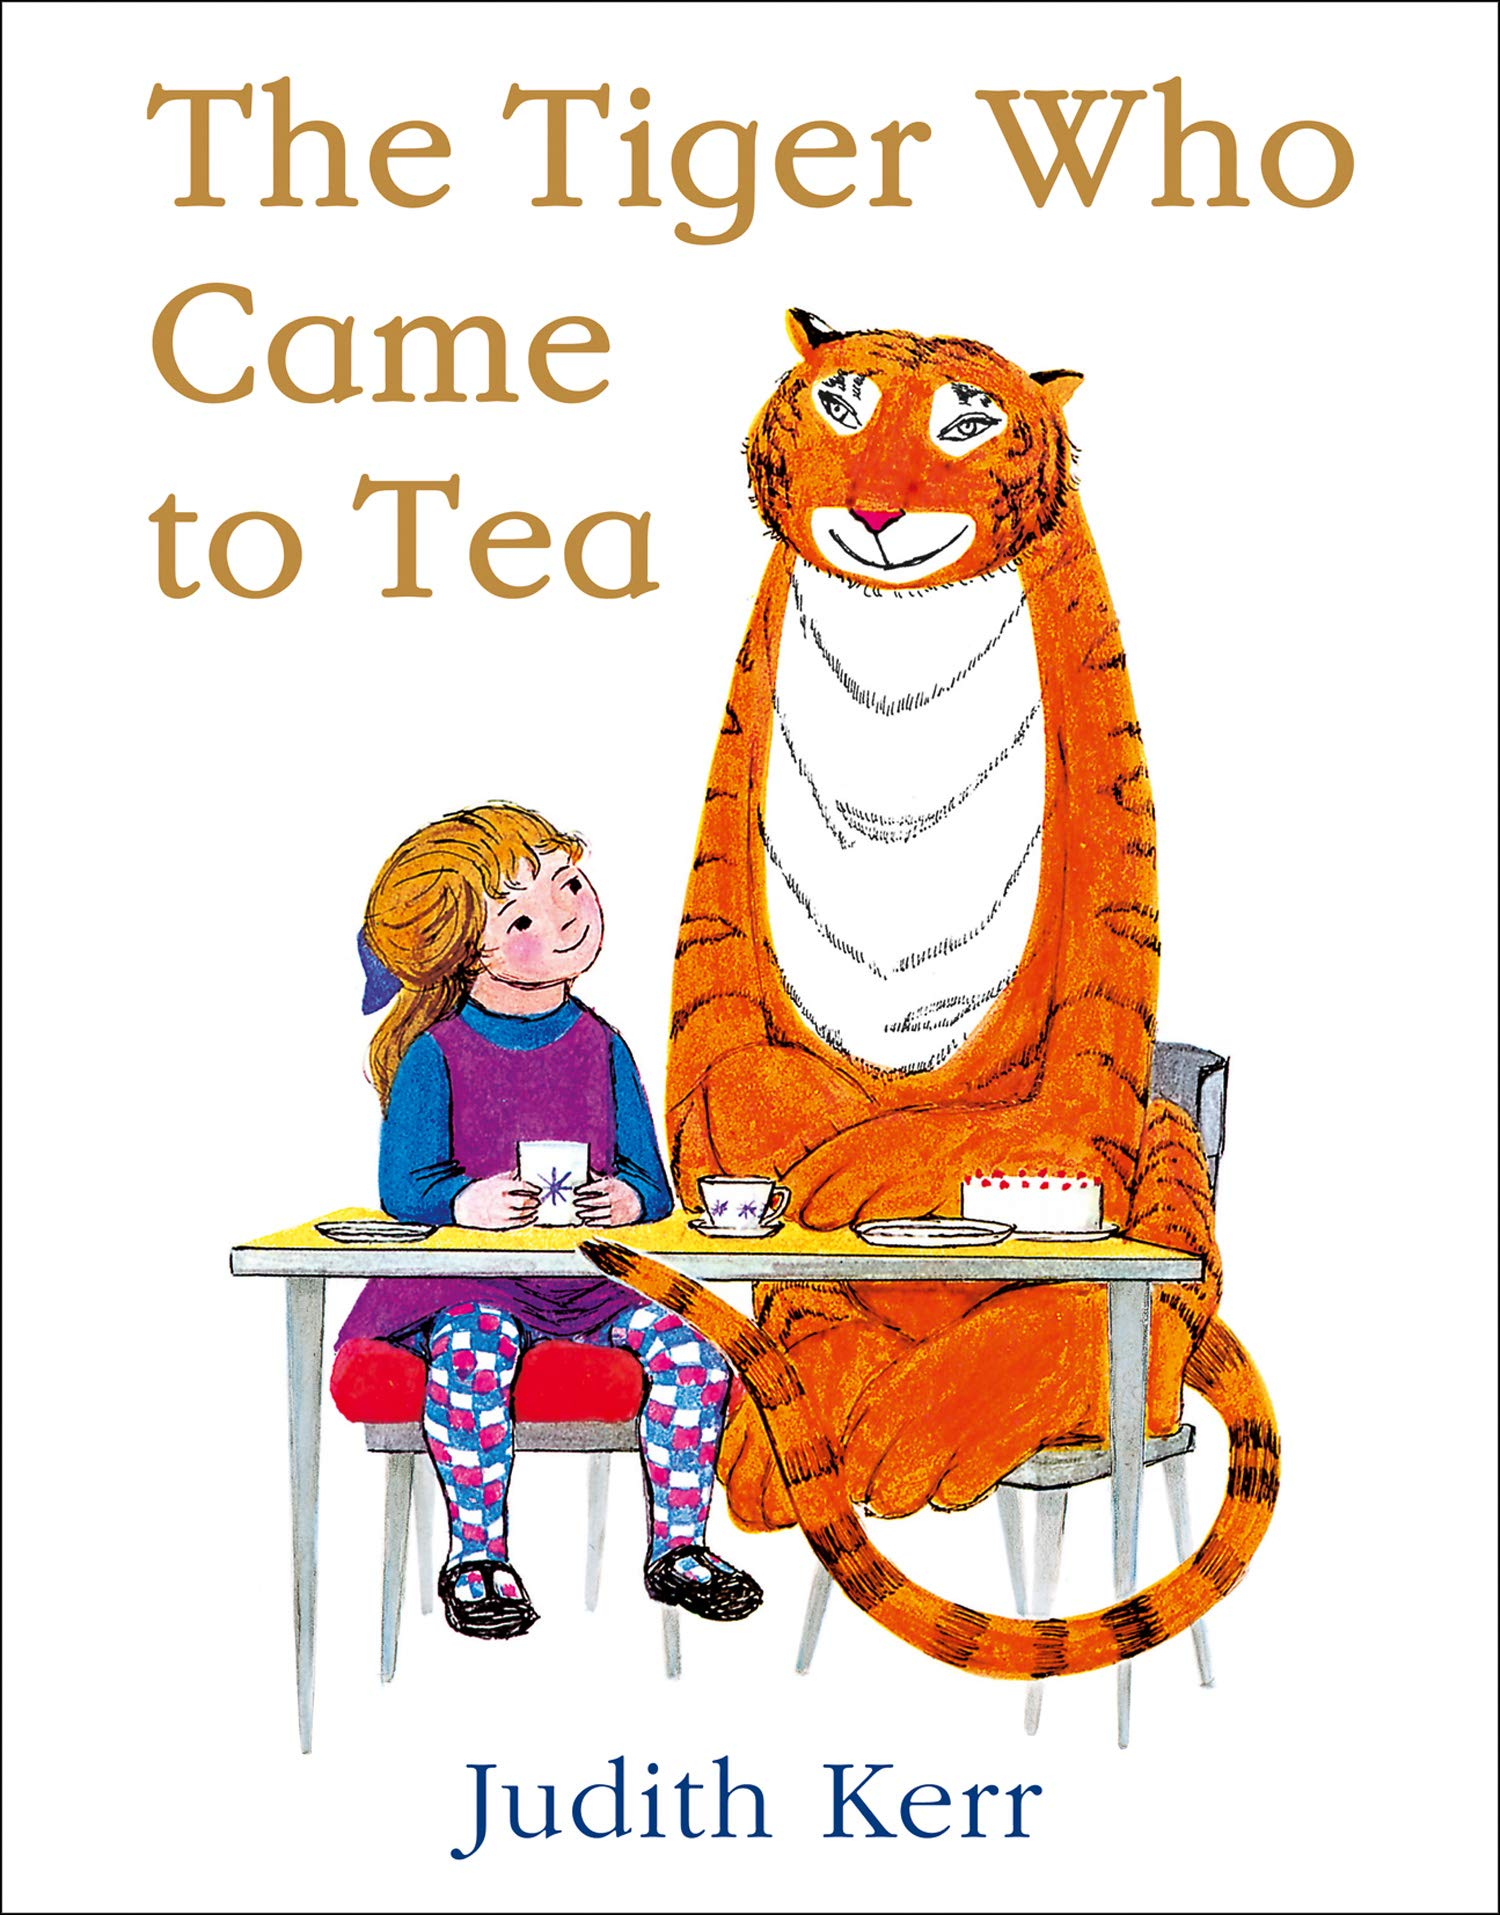 The Tiger Who Came to Tea: Amazon.co.uk: Kerr, Judith, Kerr, Judith: Books